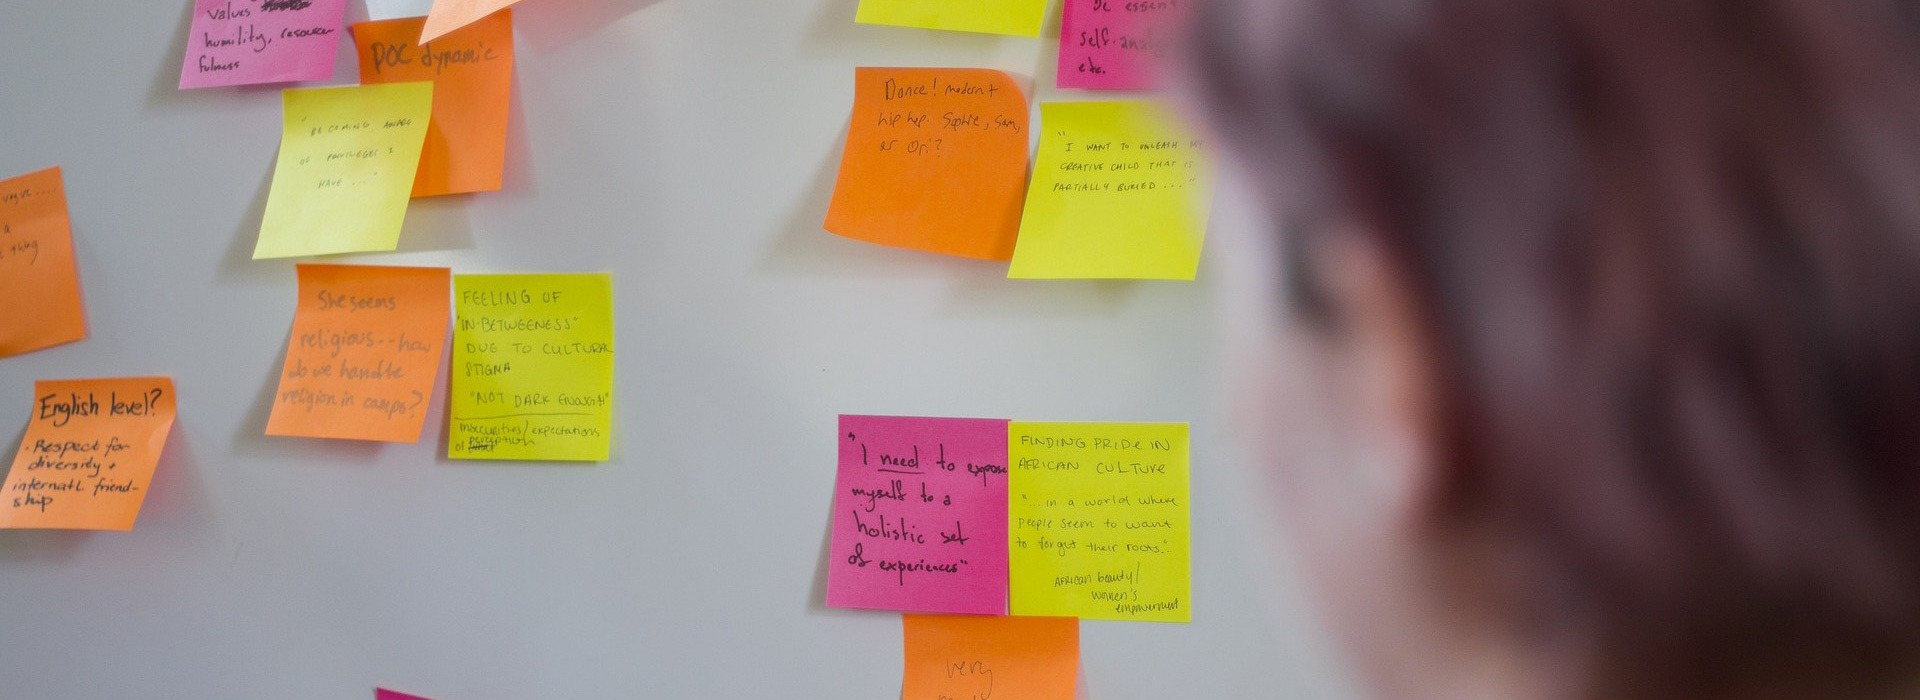 feedback on post it notes